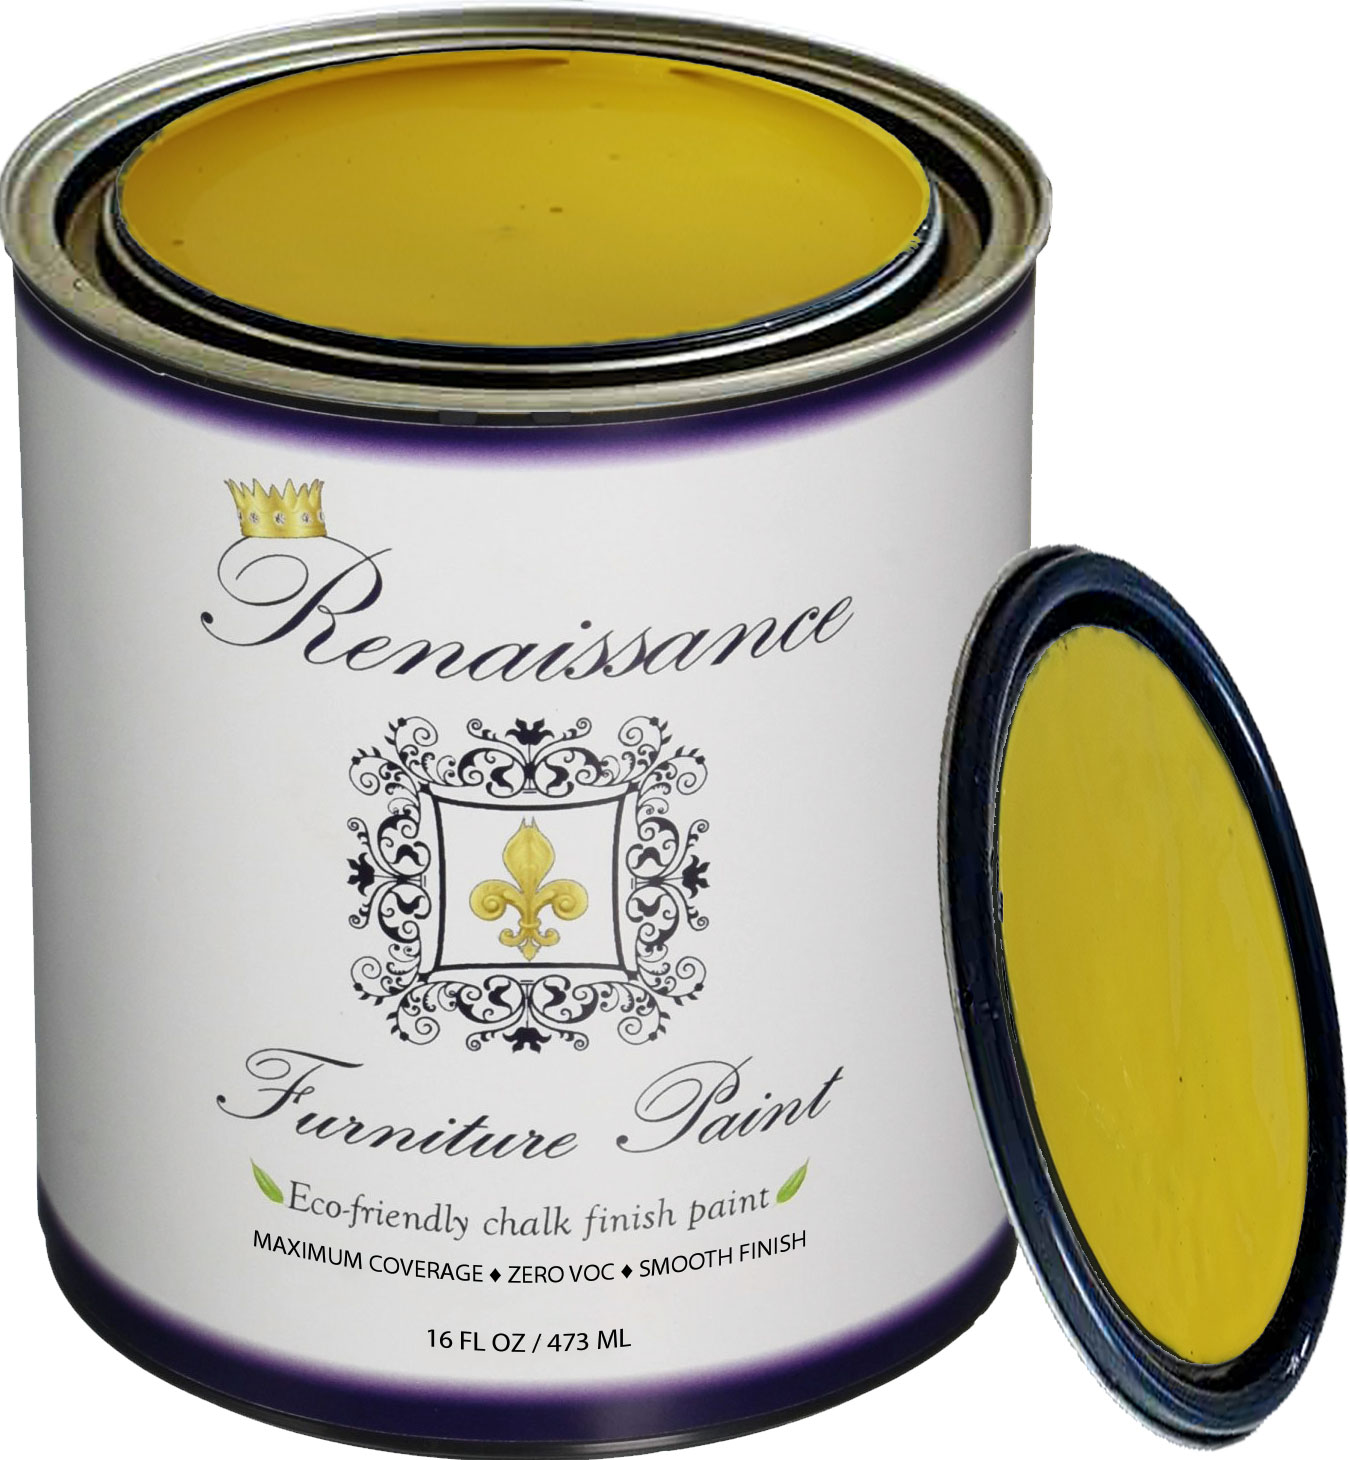 Renaissance Chalk Finish Paint - Lemon Pint (16oz) - Chalk Furniture & Cabinet Paint - Non Toxic, Eco-Friendly, Superior Coverage